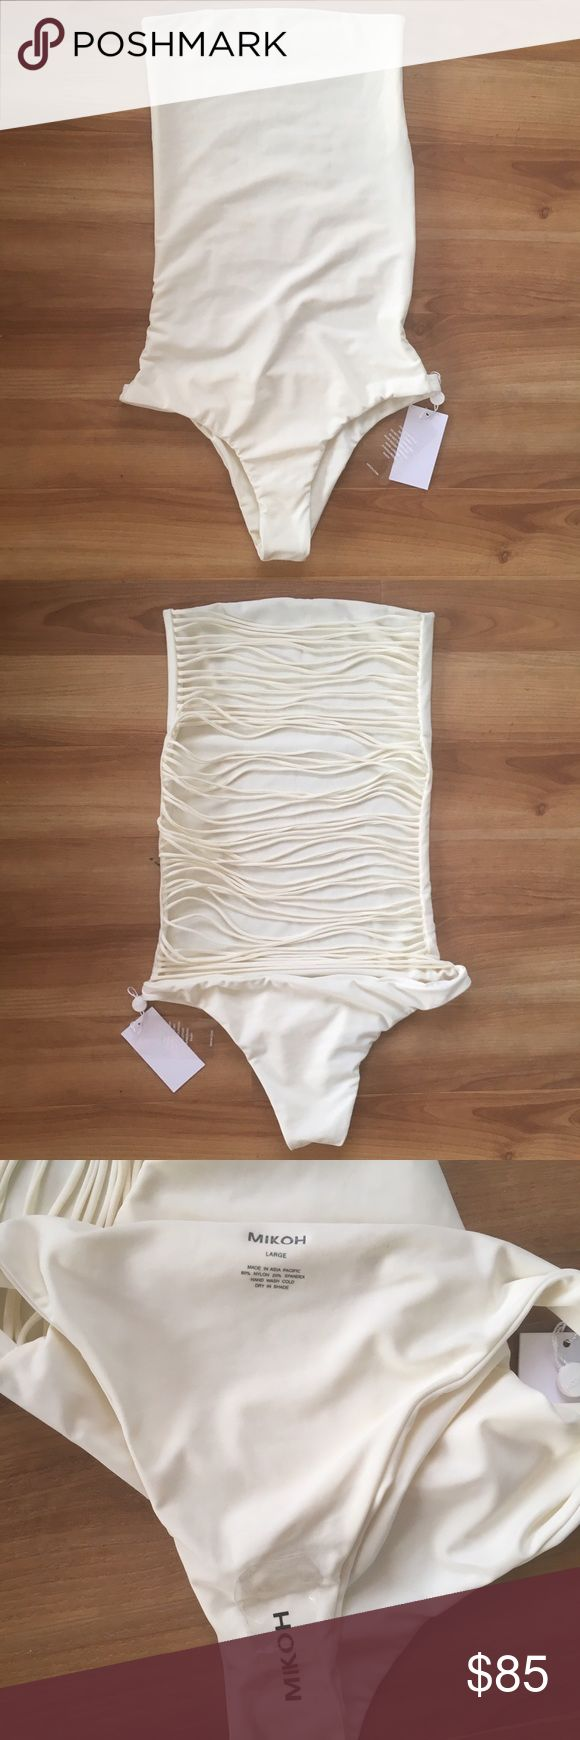 NWT cream one piece MIKOH Santorini suit (large) Brand new with tags, sanitary liner still stuck on, cool back. Santorini style. Mikoh Swim One Pieces